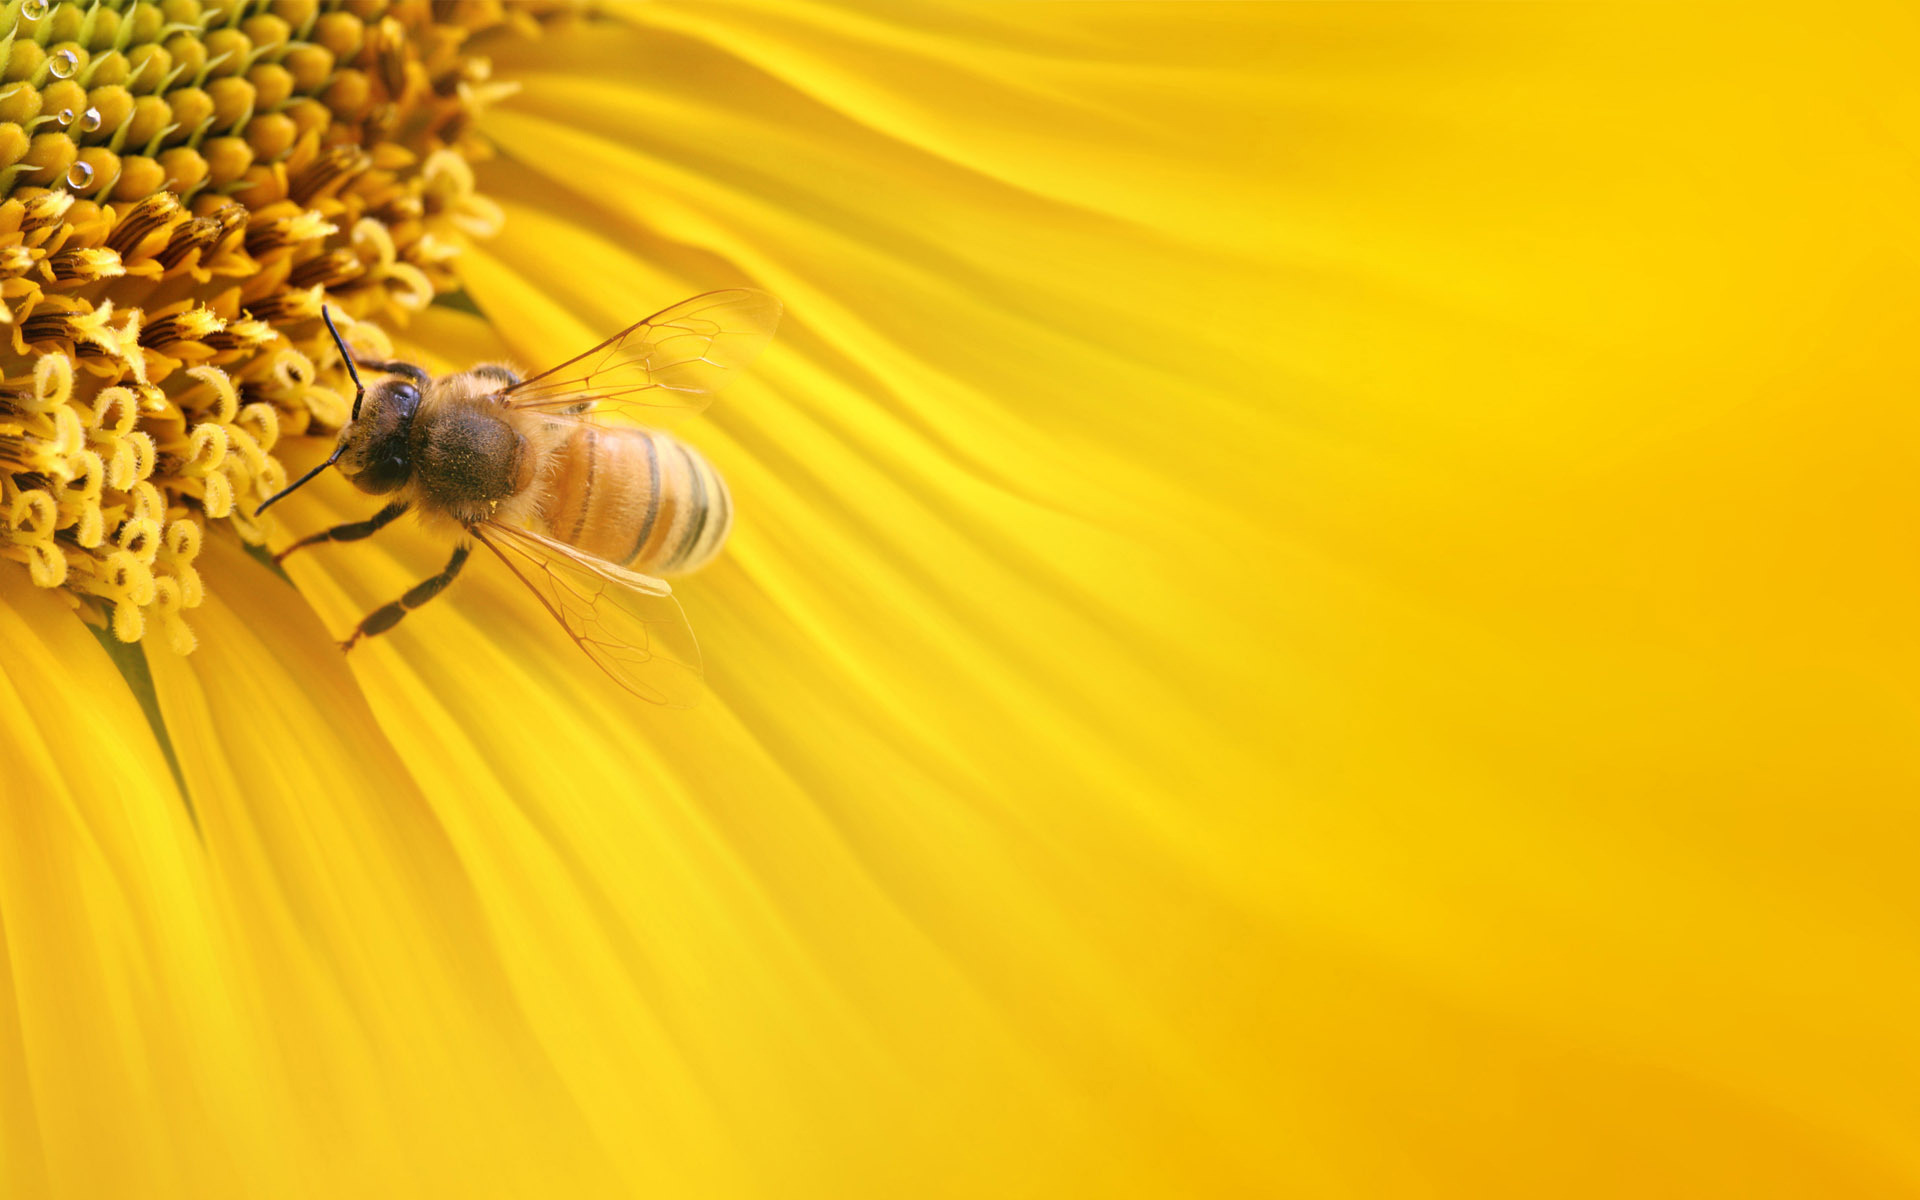 Bee HD Wallpaper   HD Wallpapers Backgrounds of Your Choice 1920x1200